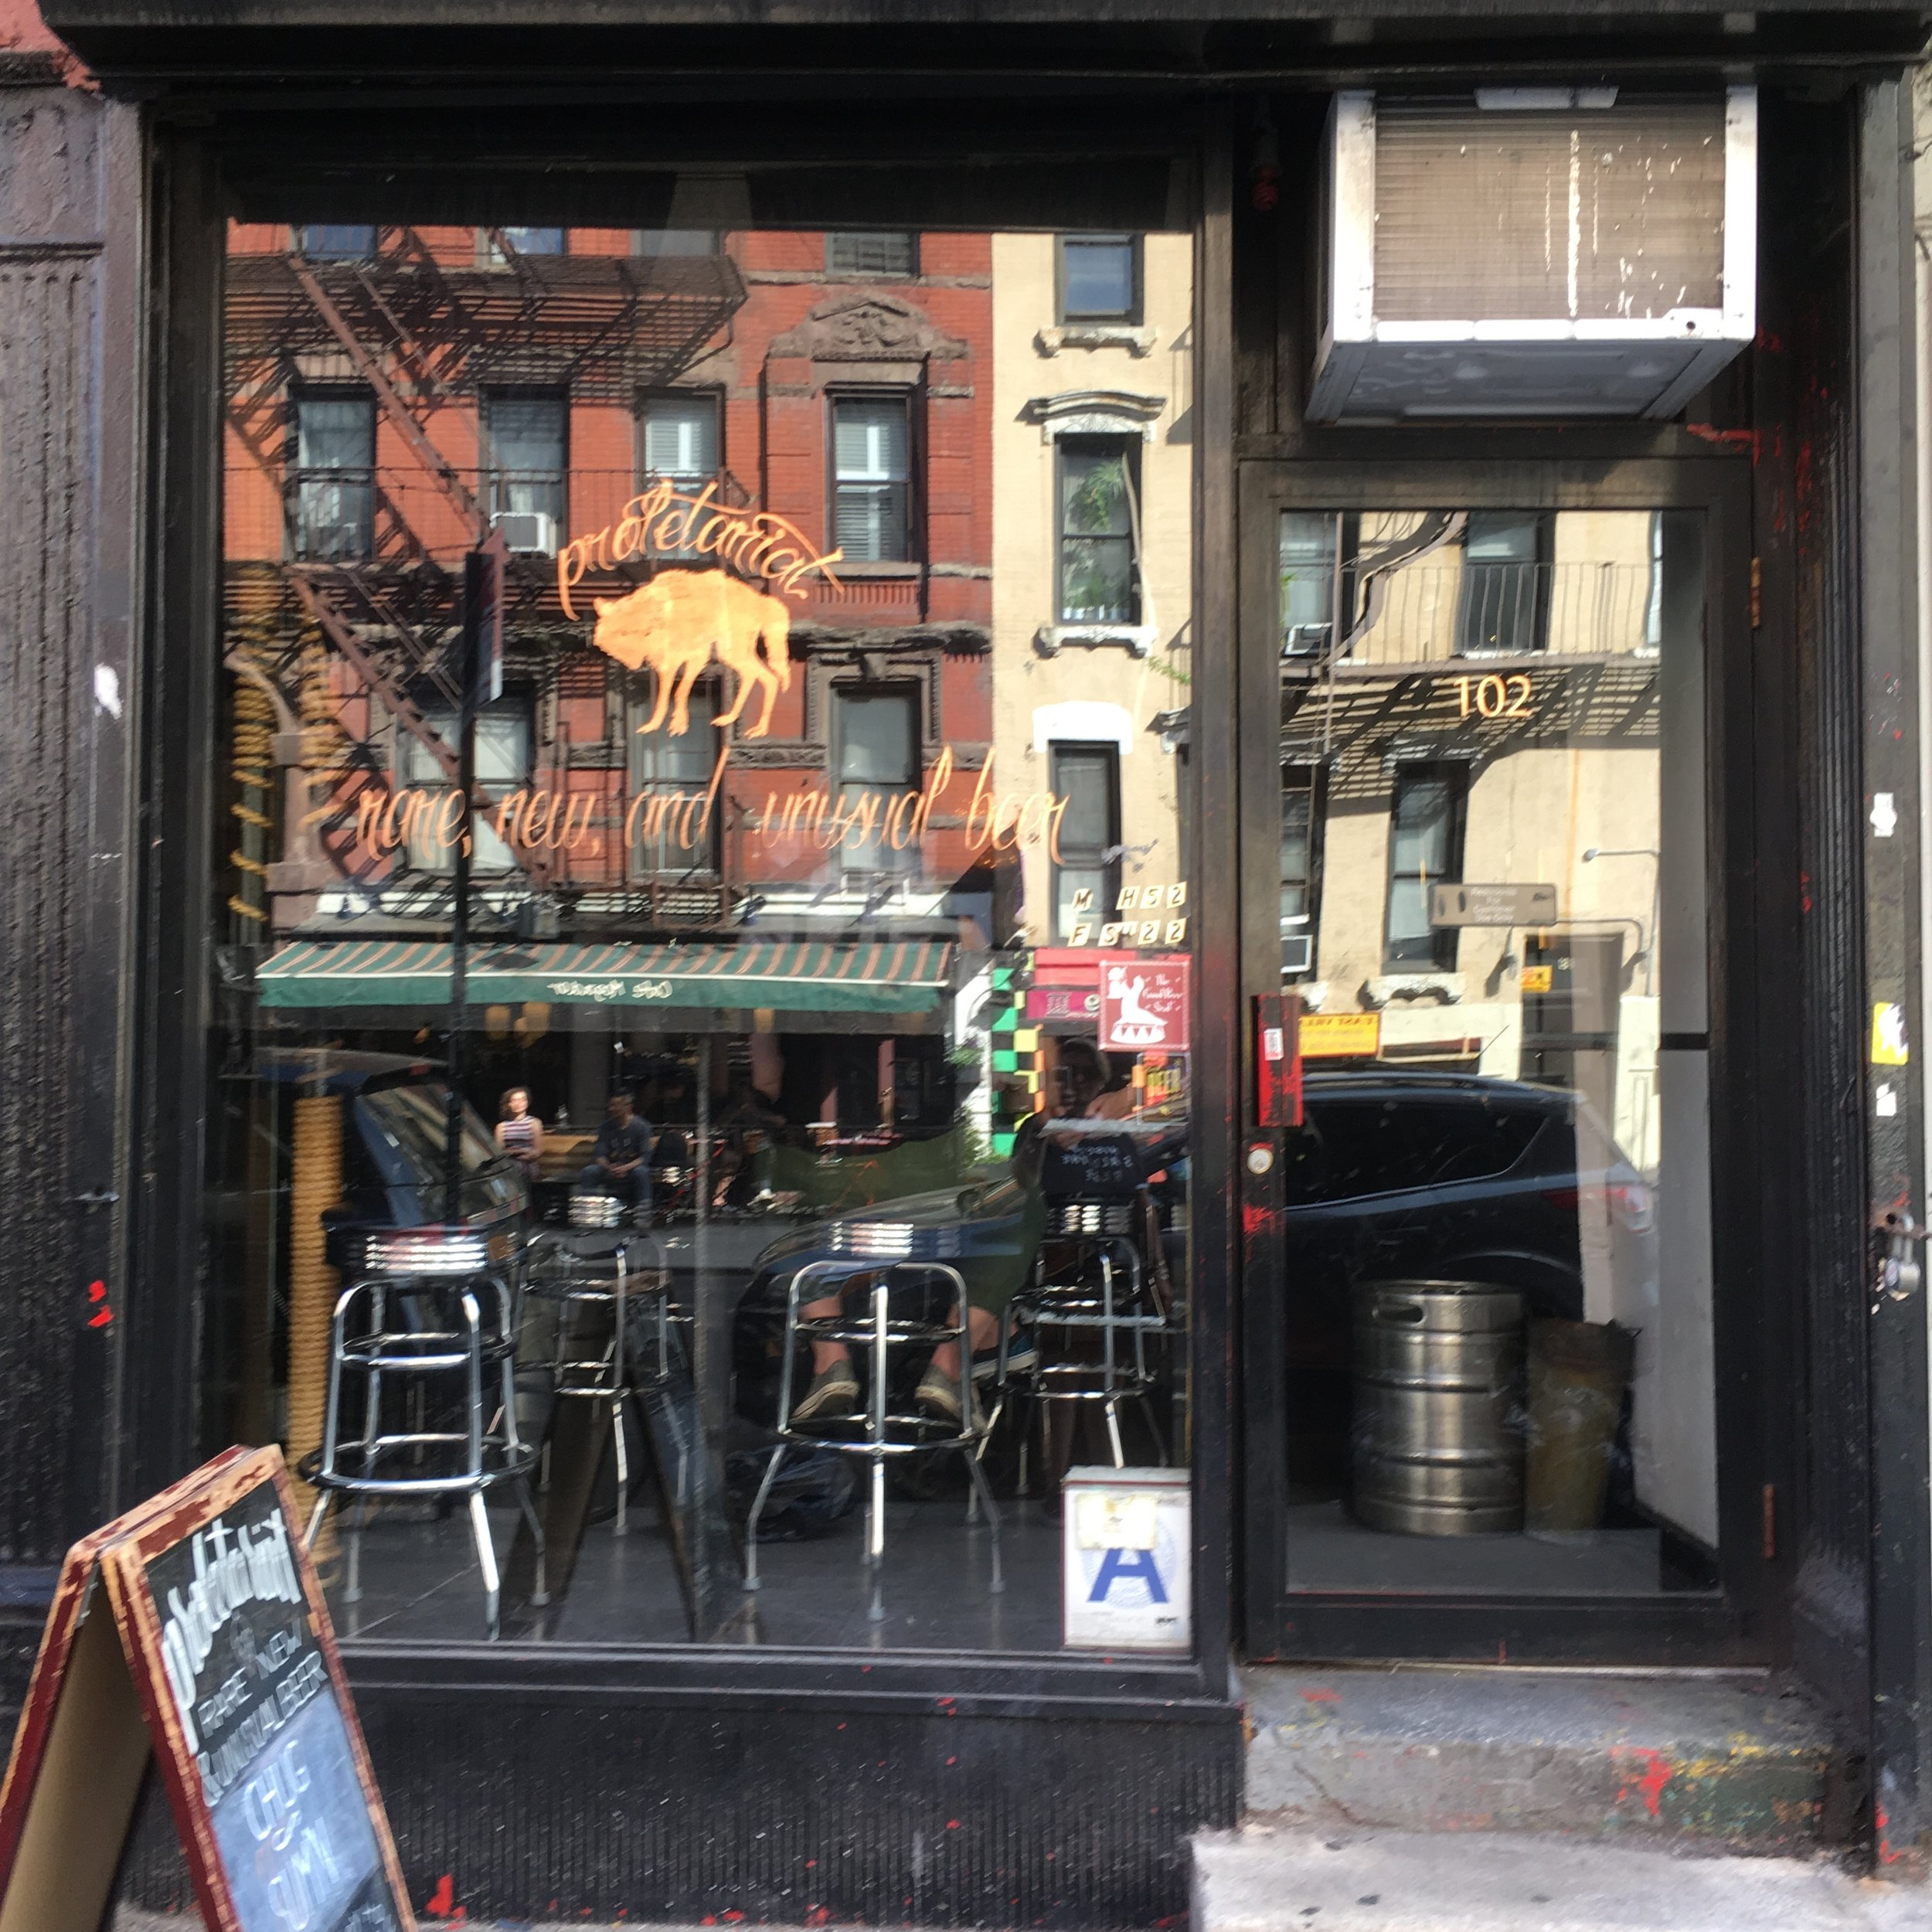 PROLETARIAT - If your feet have had enough, take a few more steps into this awesome little East Village joint. They carry a cool selection of beers you probably haven't tried, yet, in a friendly, no frills space. The front window-side space offers people watching at its best.